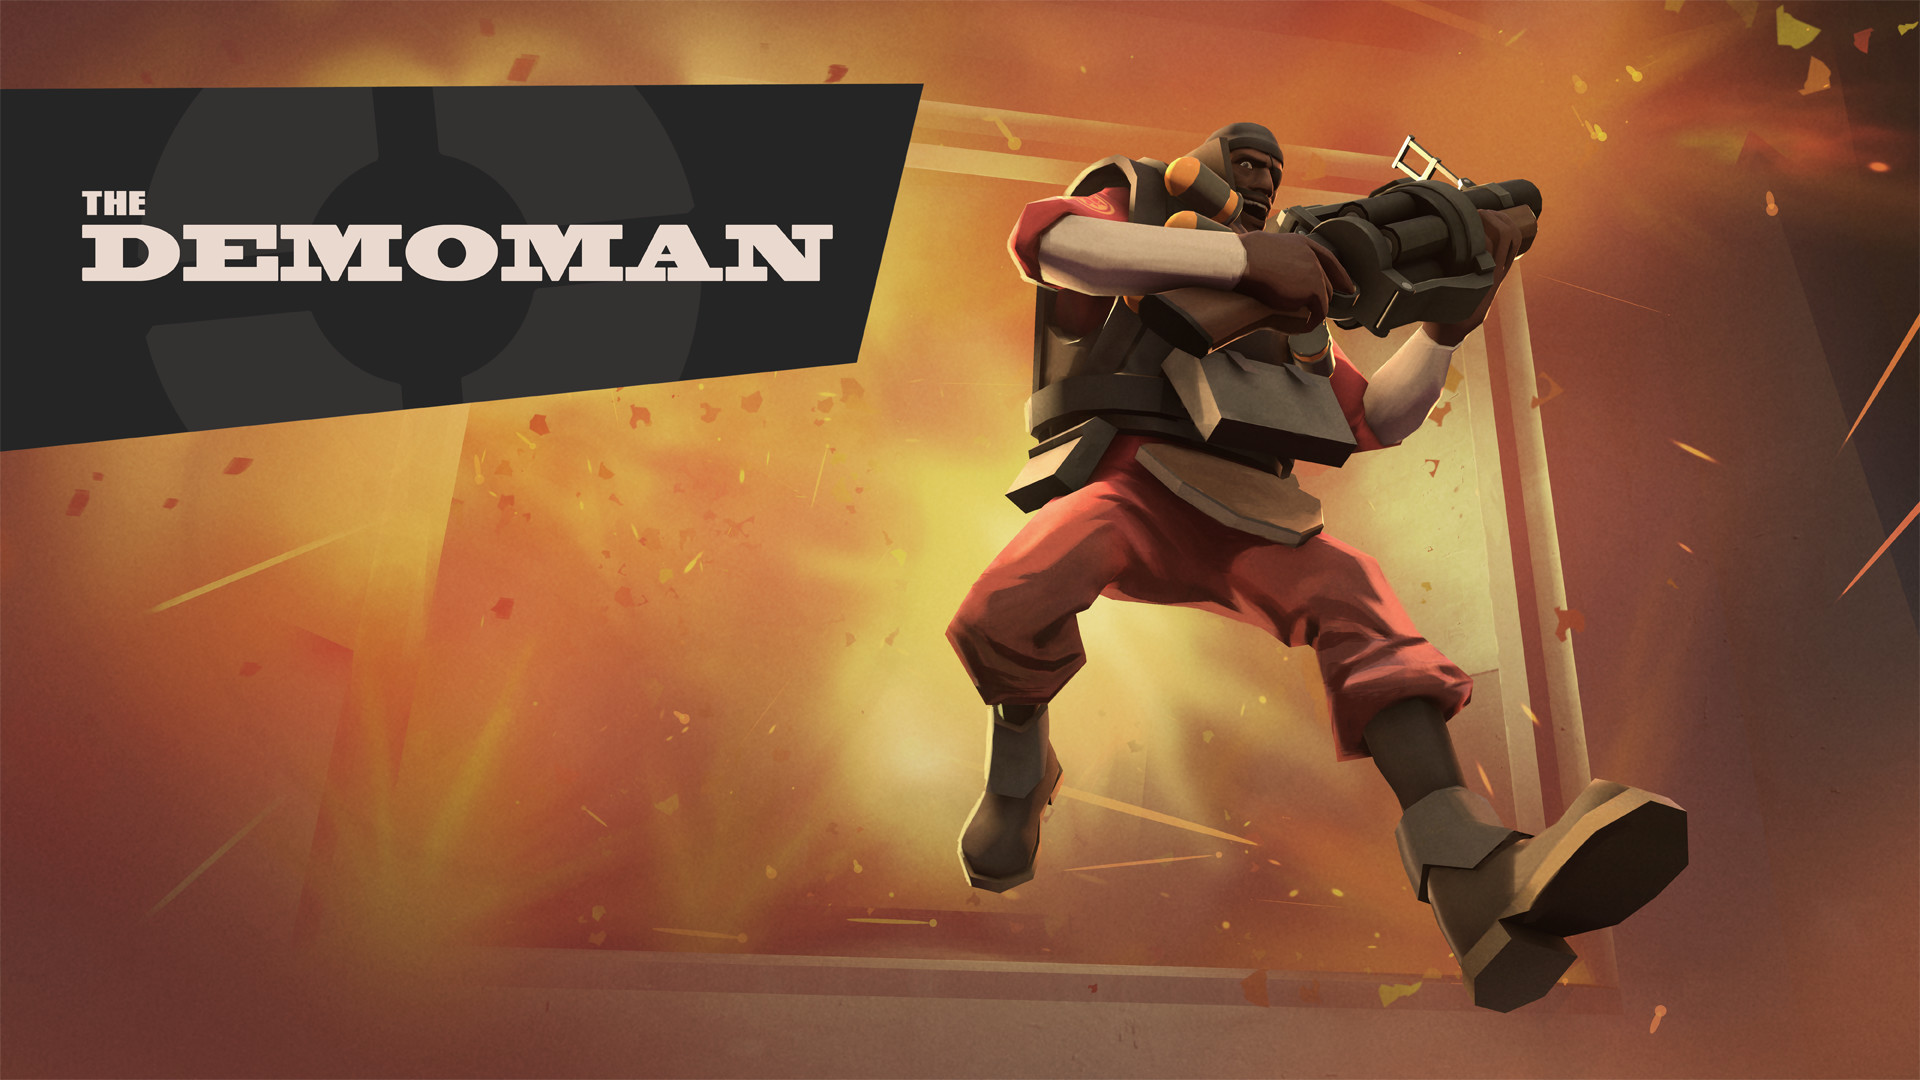 1920x1080 new tf2 wallpapers/backgrounds - Steam Users' Forums